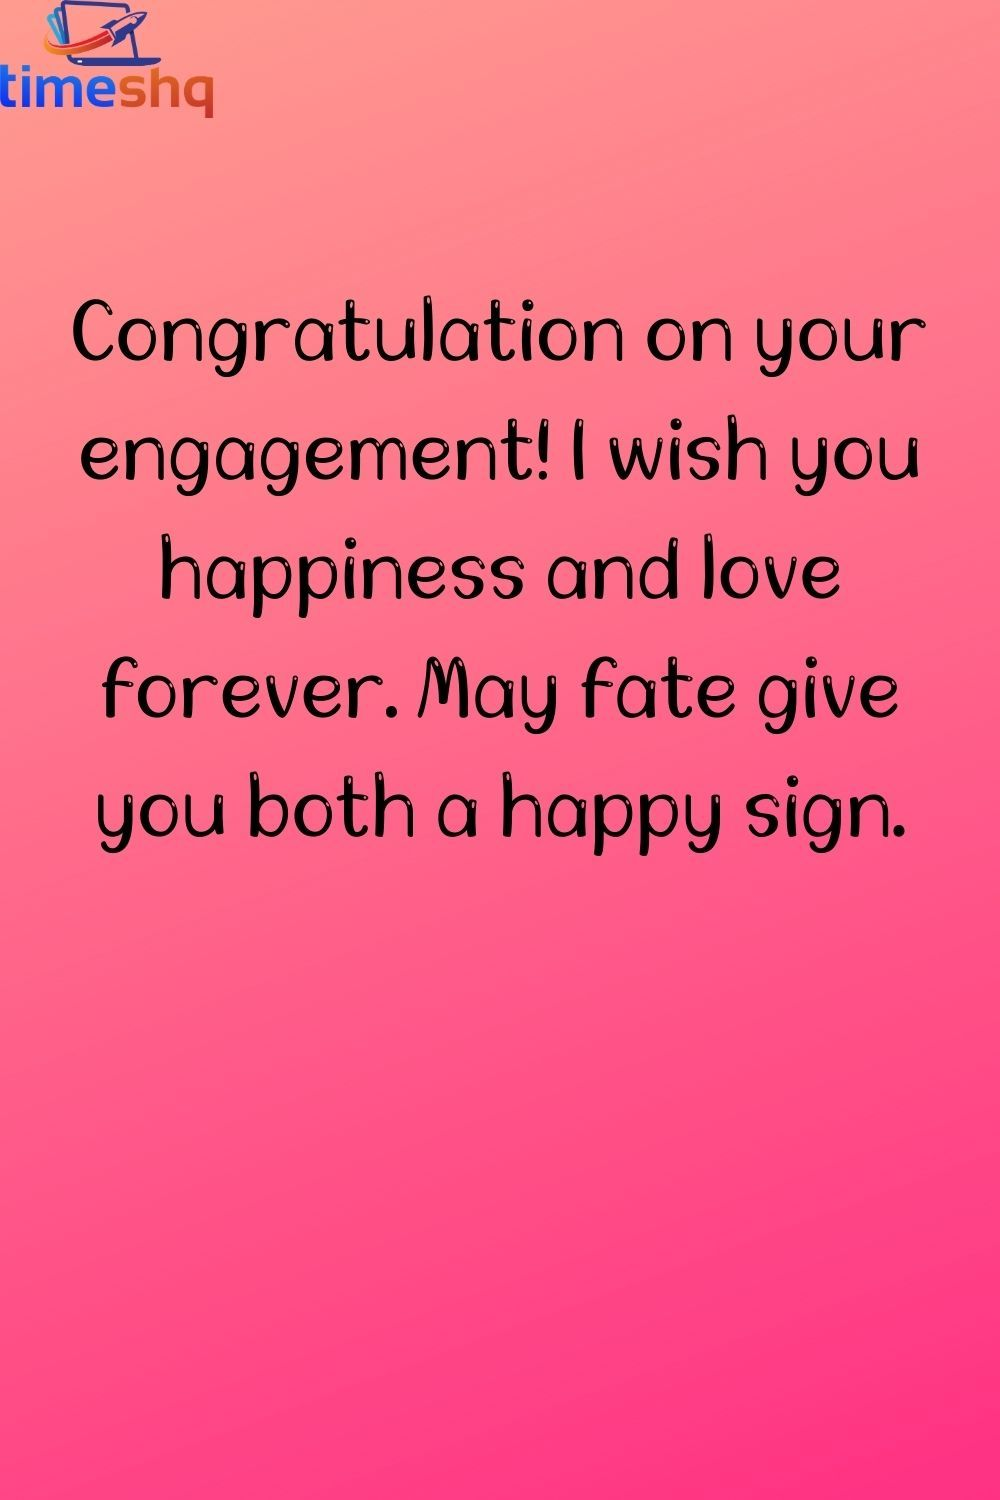 Happy Engagement Wishes In 2021 Anniversary Quotes For Husband Friend Love Quotes Happy Engagement